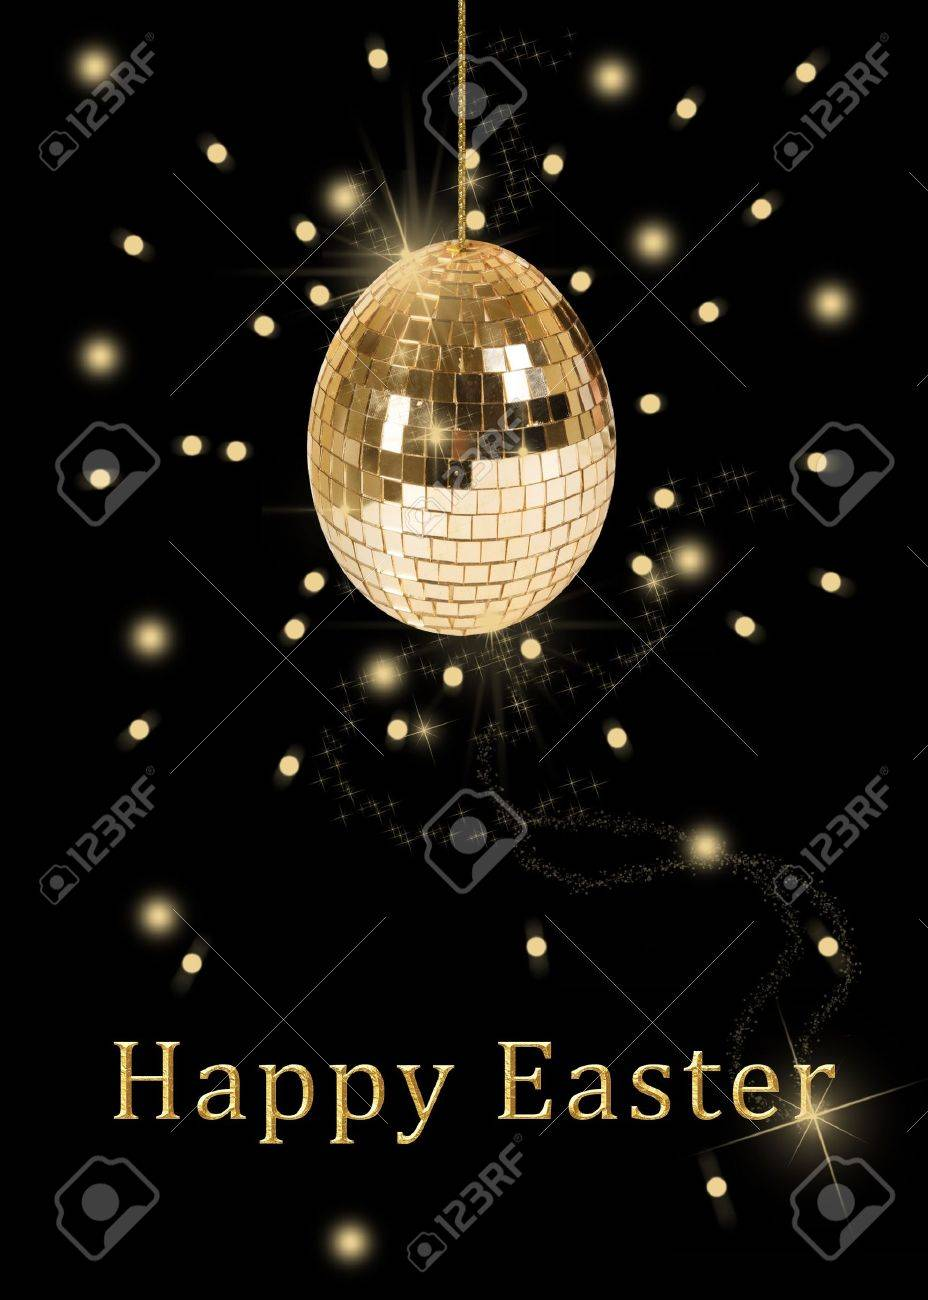 A glamourous easter illustration  a hanging disco ball in a shape of an easter egg with shiny golden sequins on a black background Stock Illustration - 12584628